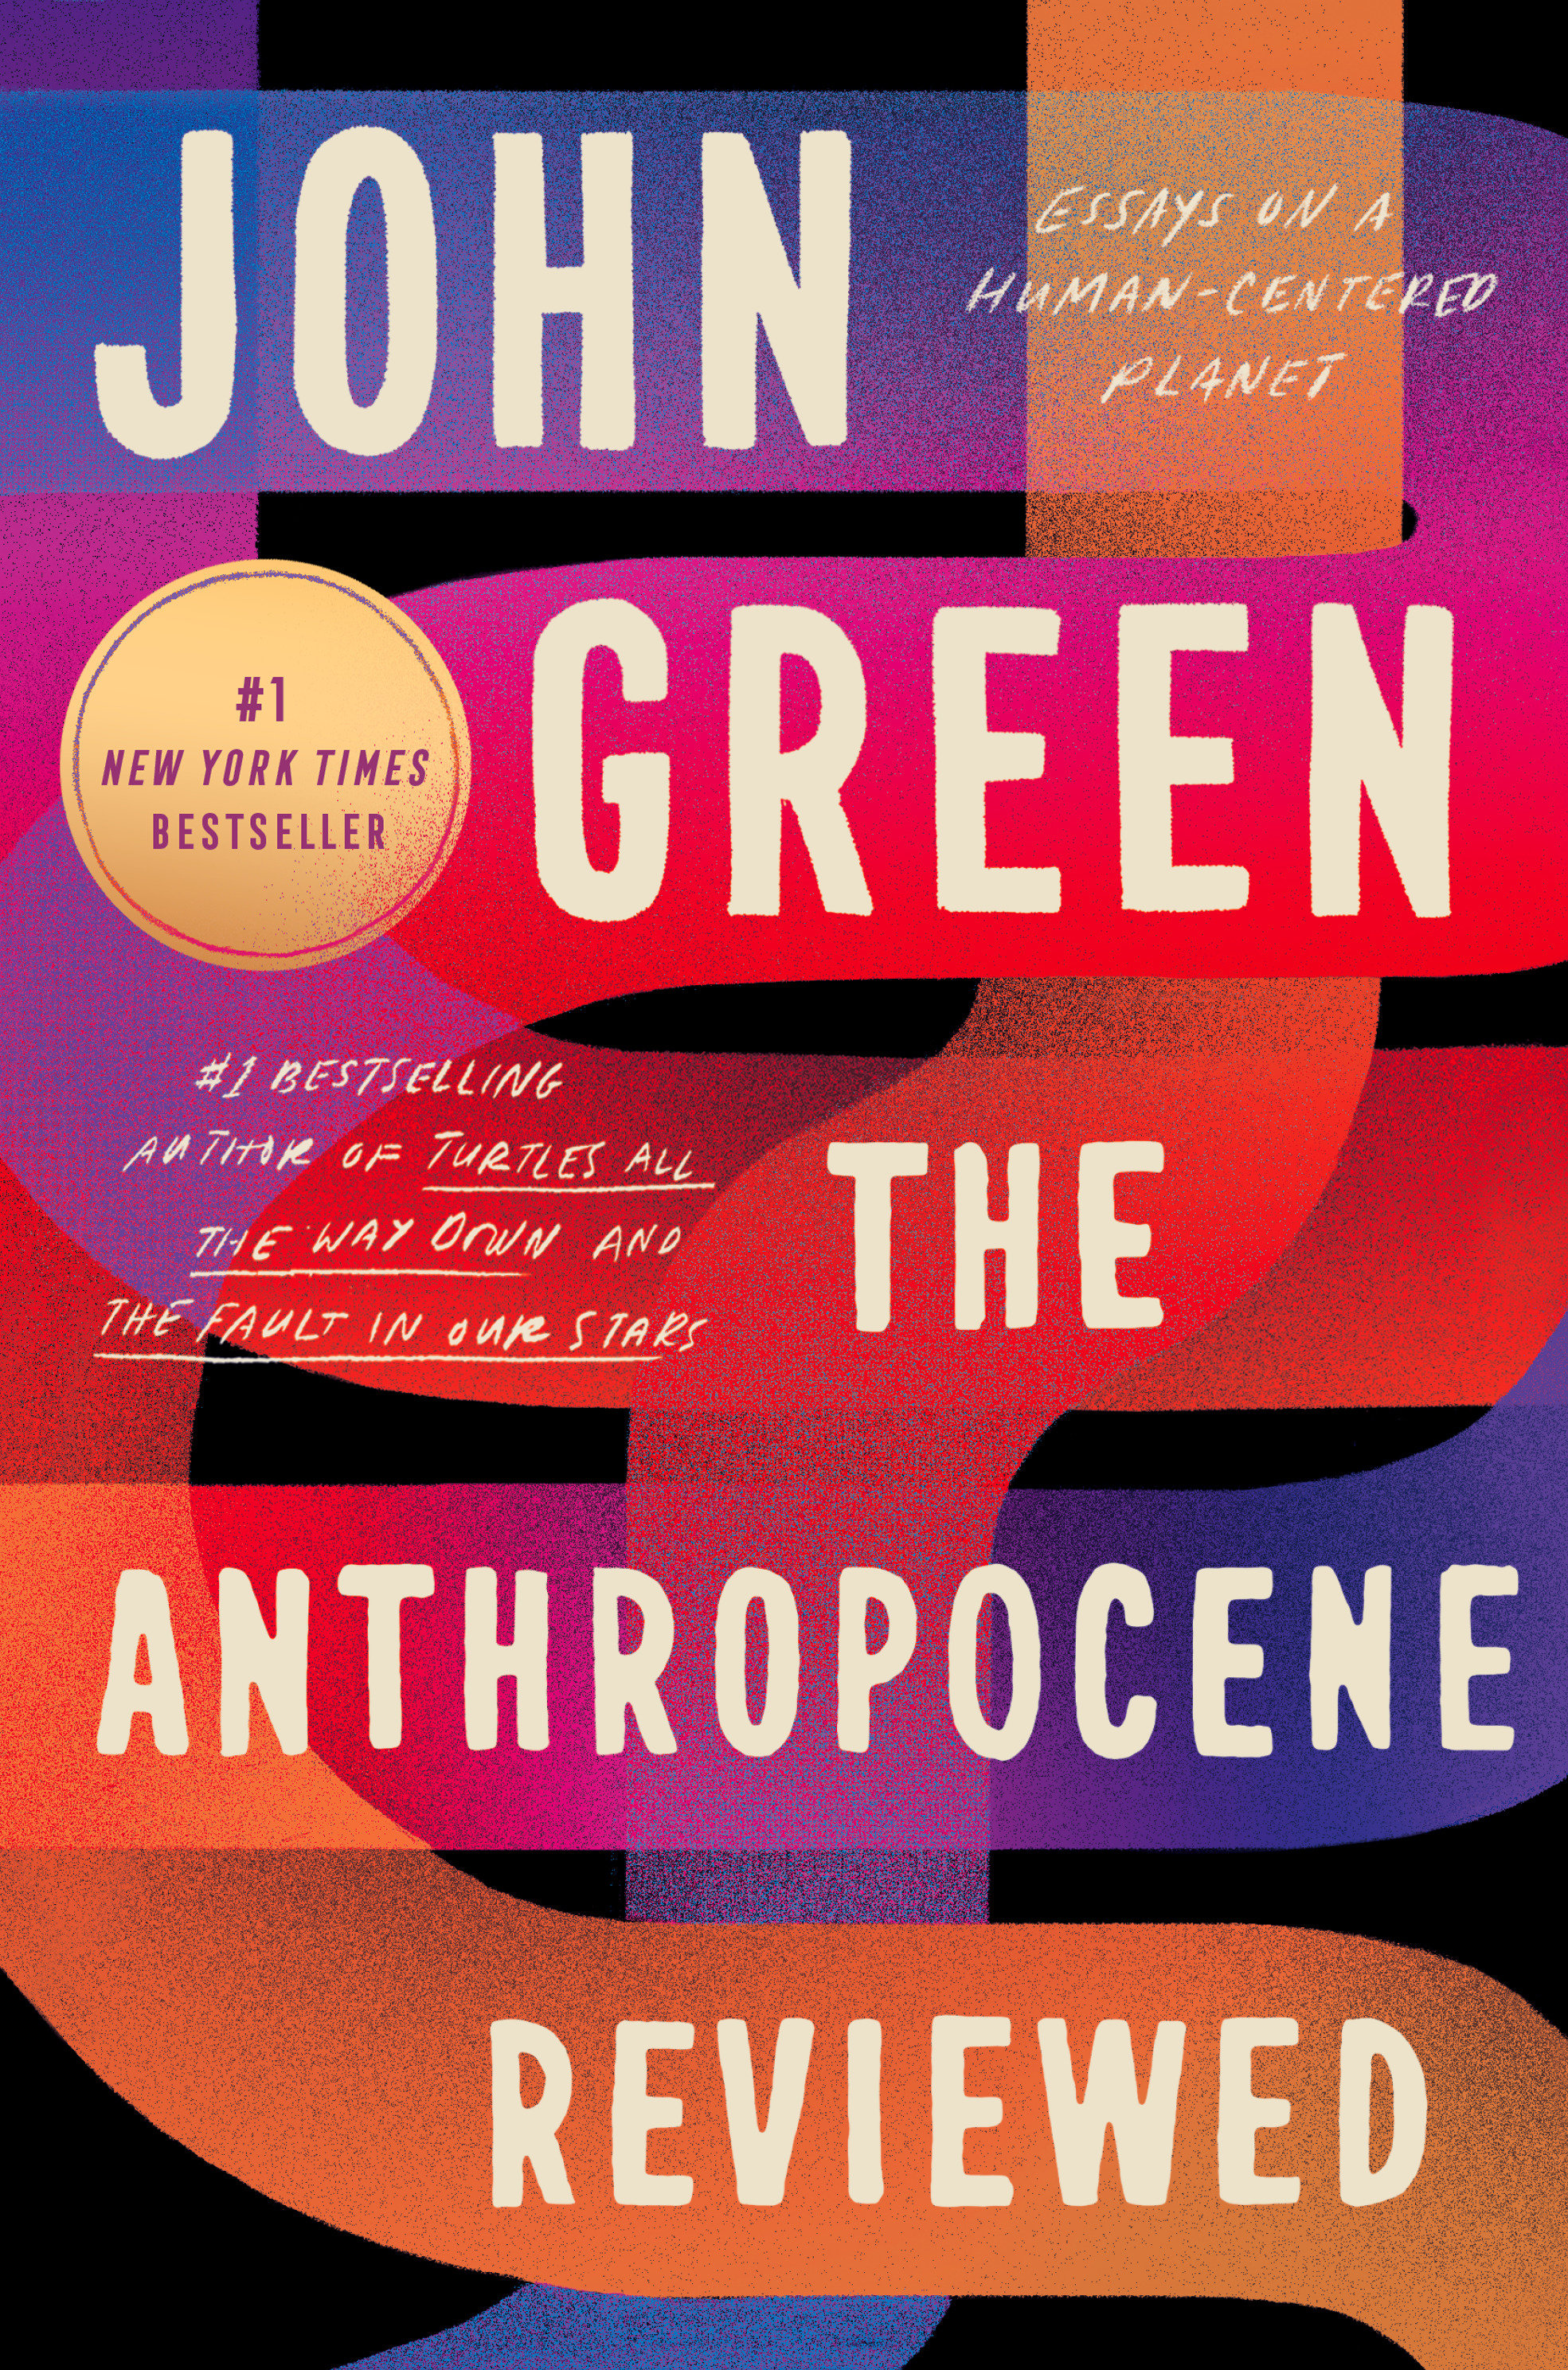 The Anthropocene Reviewed Essays on a Human-Centered Planet